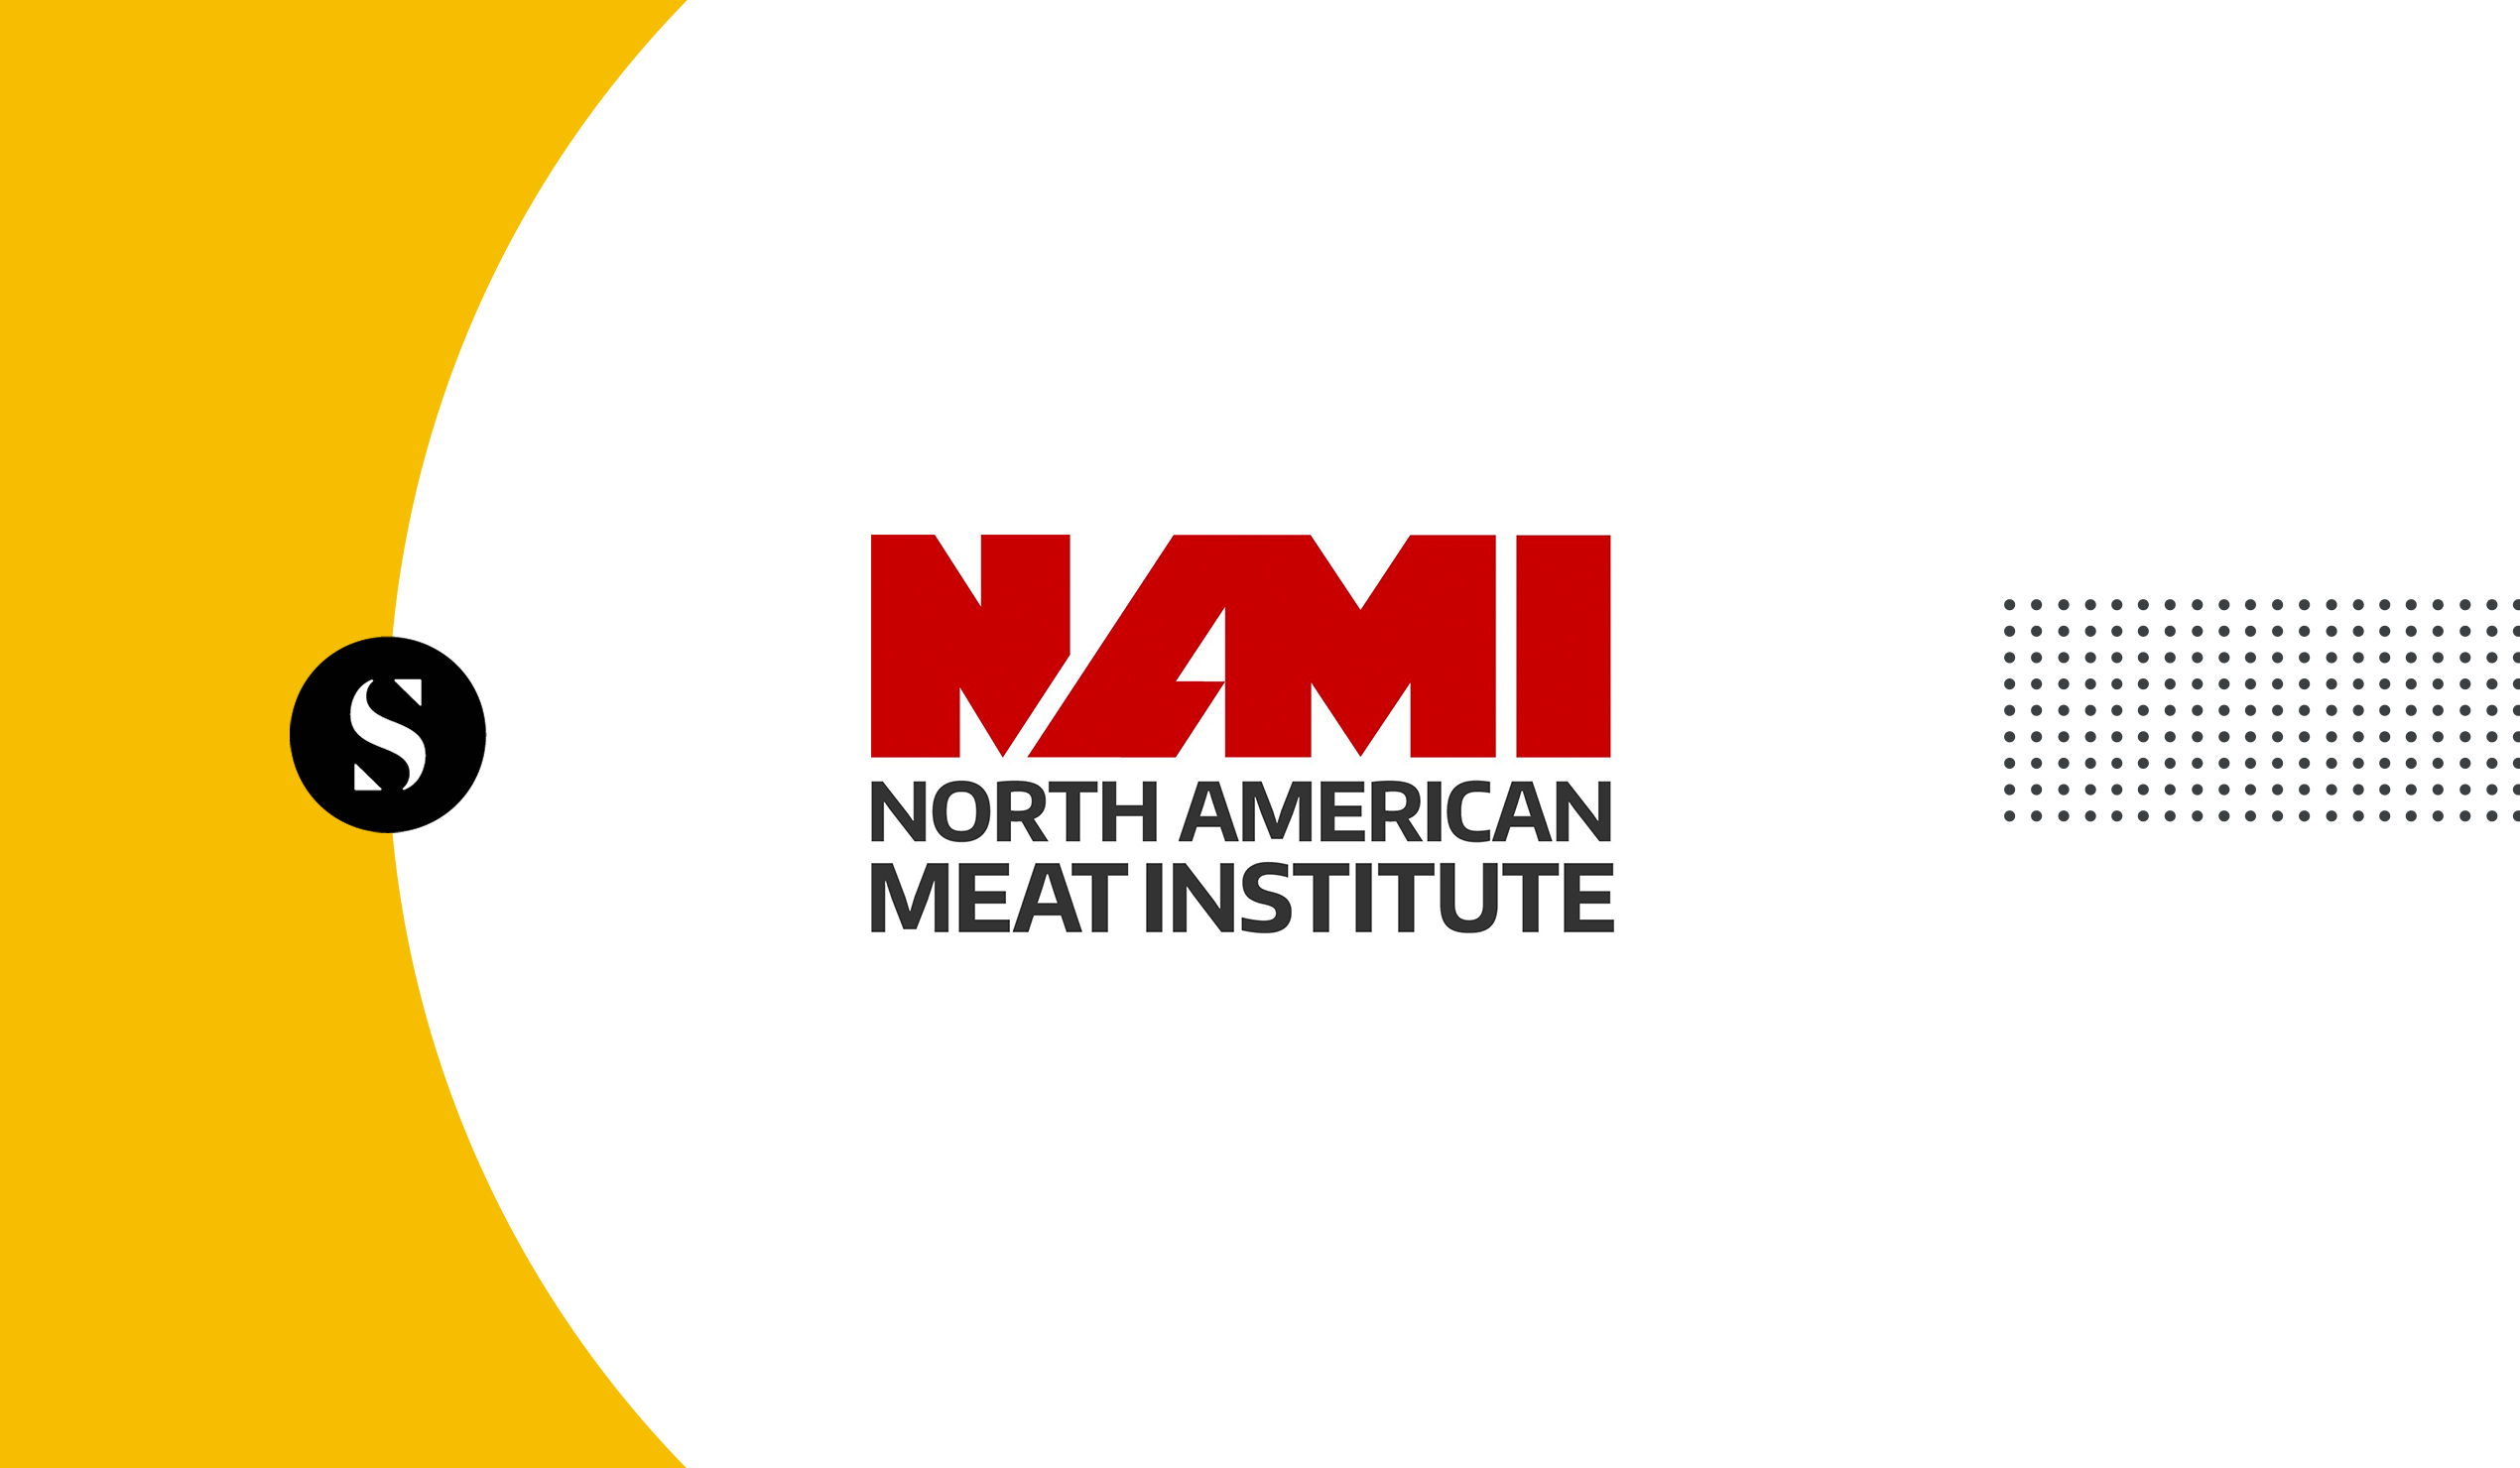 North American Meat Institute Is Latest Win in Firm's Growing List of Foodways System Clients | Signal Theory